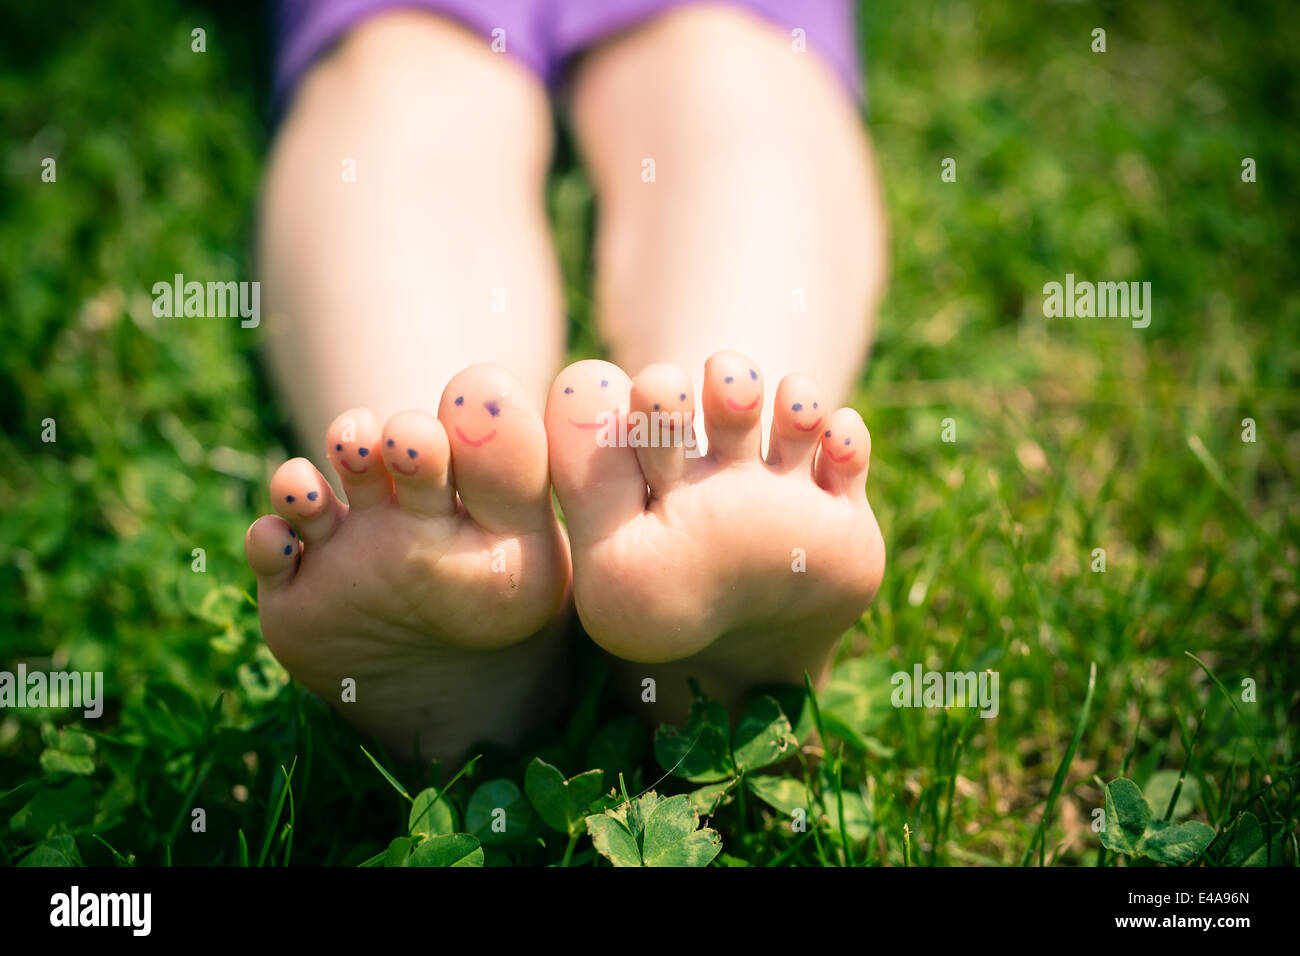 Little girl's feet with painted toes lying in grass - Stock Image